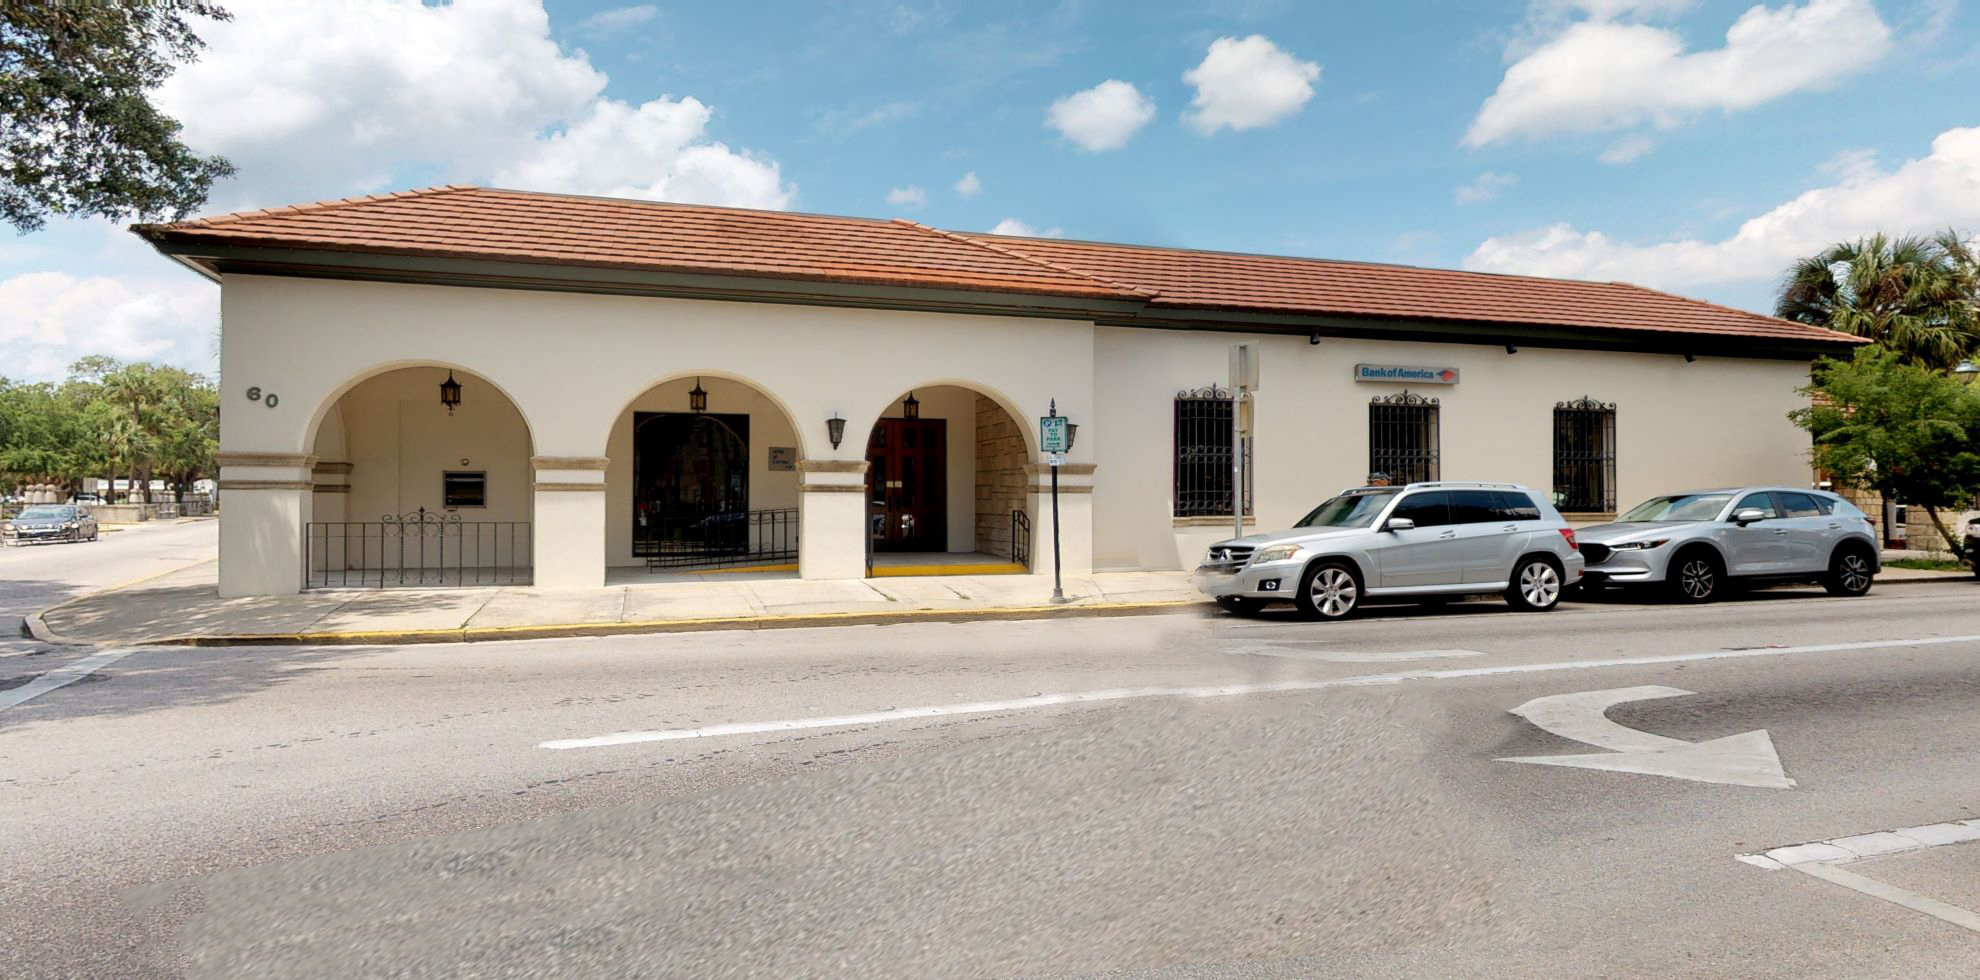 Bank of America financial center with walk-up ATM | 60 Cathedral Pl, Saint Augustine, FL 32084